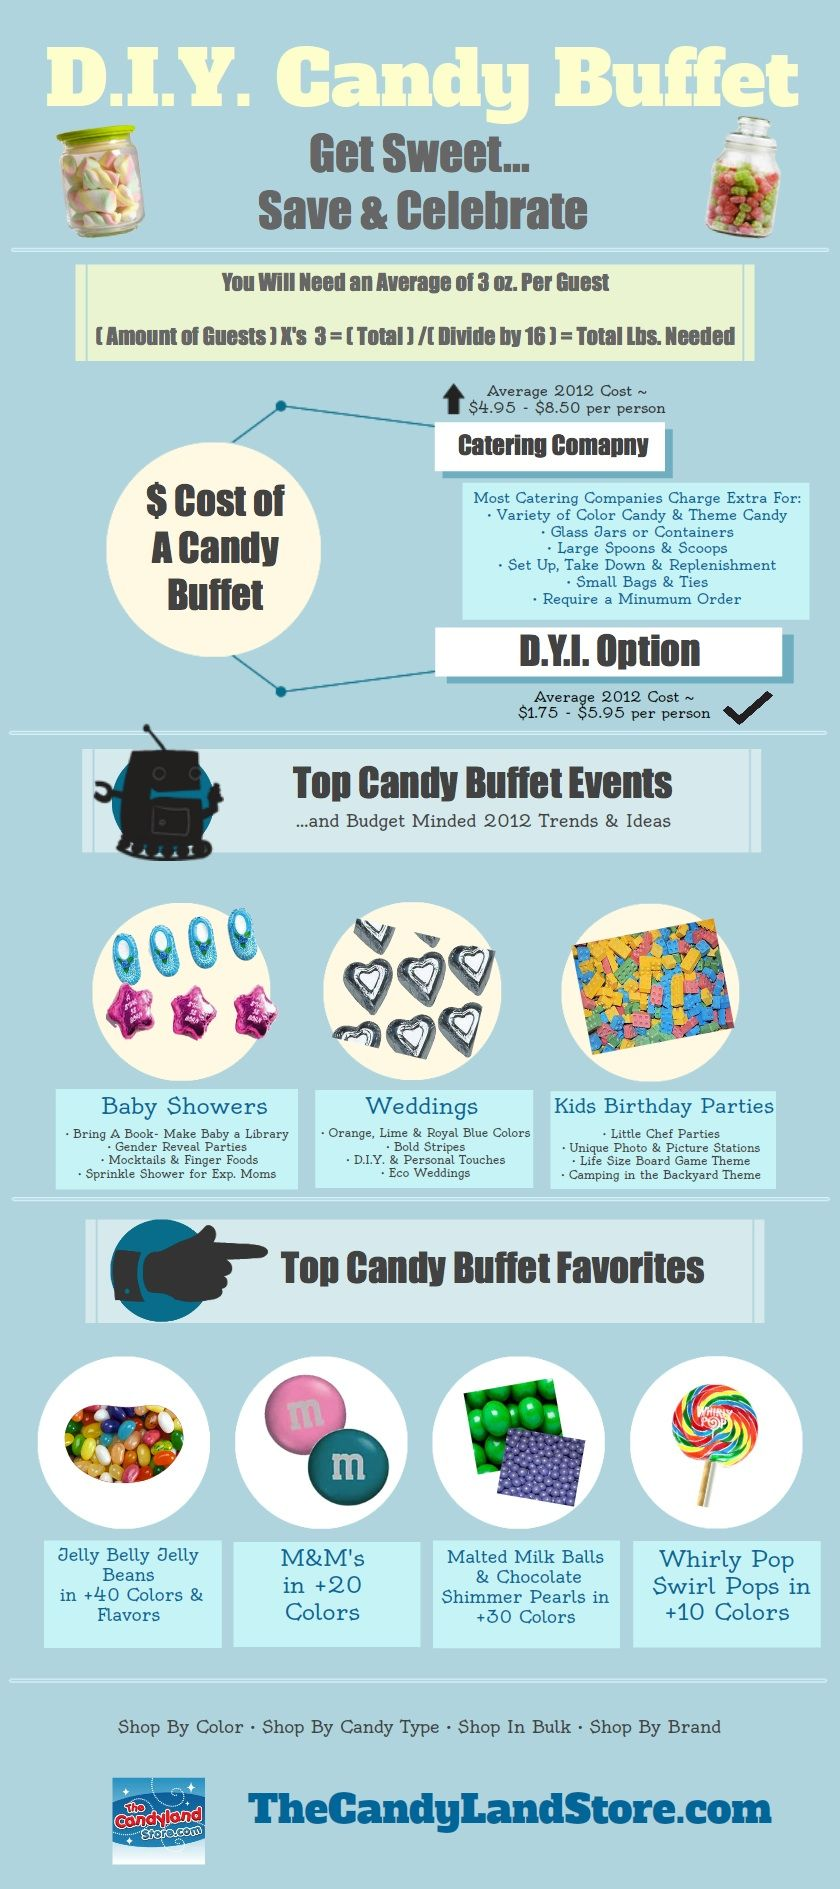 Easy Candy Buffet Tips Using Bulk Do It Yourself Ideas For Wedding Baby